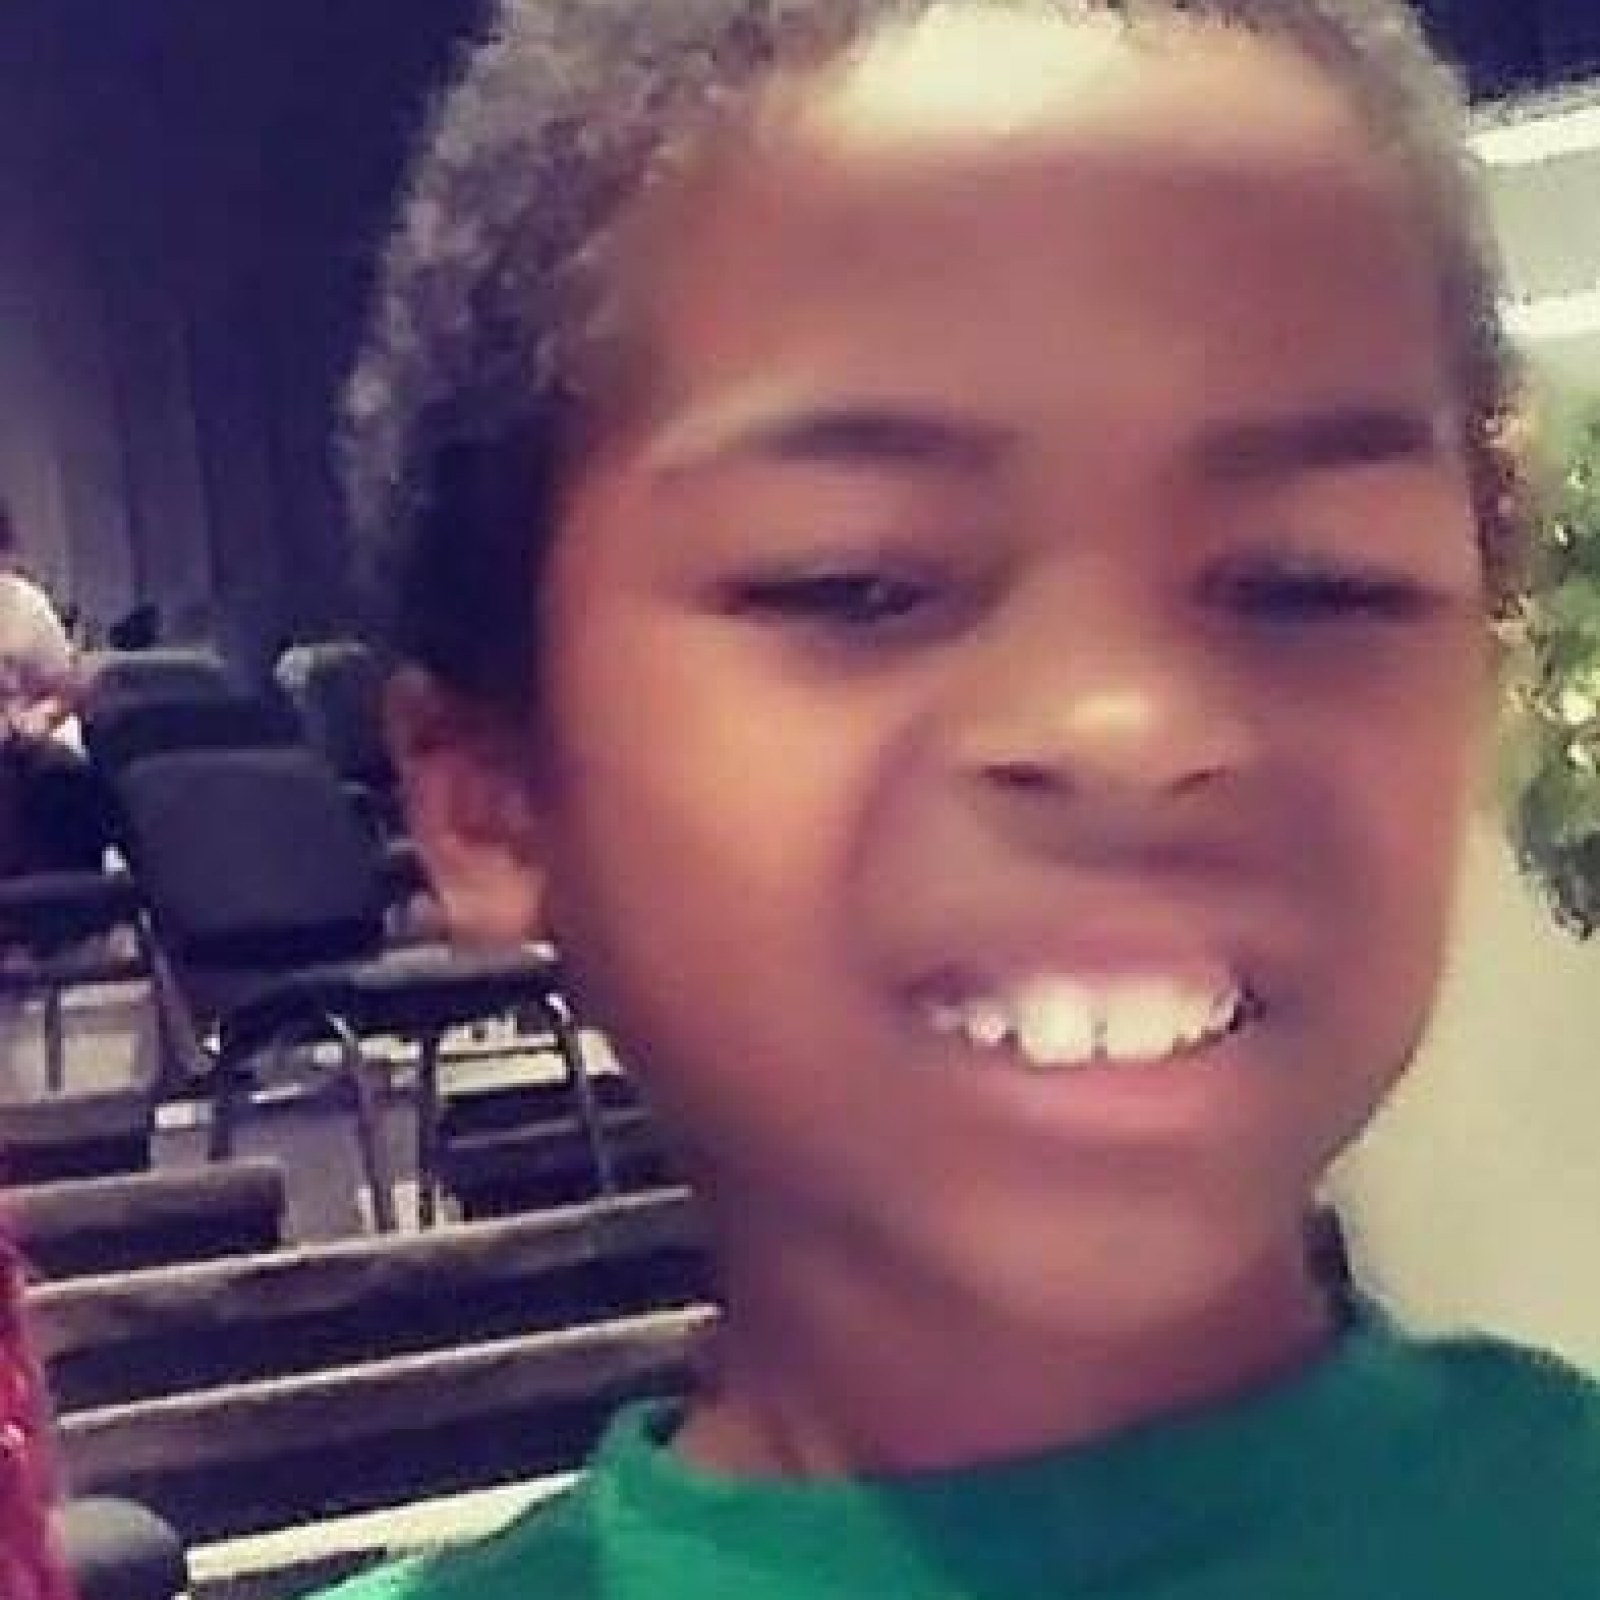 Texas Authorities Searching for Missing 7-Year-Old Boy